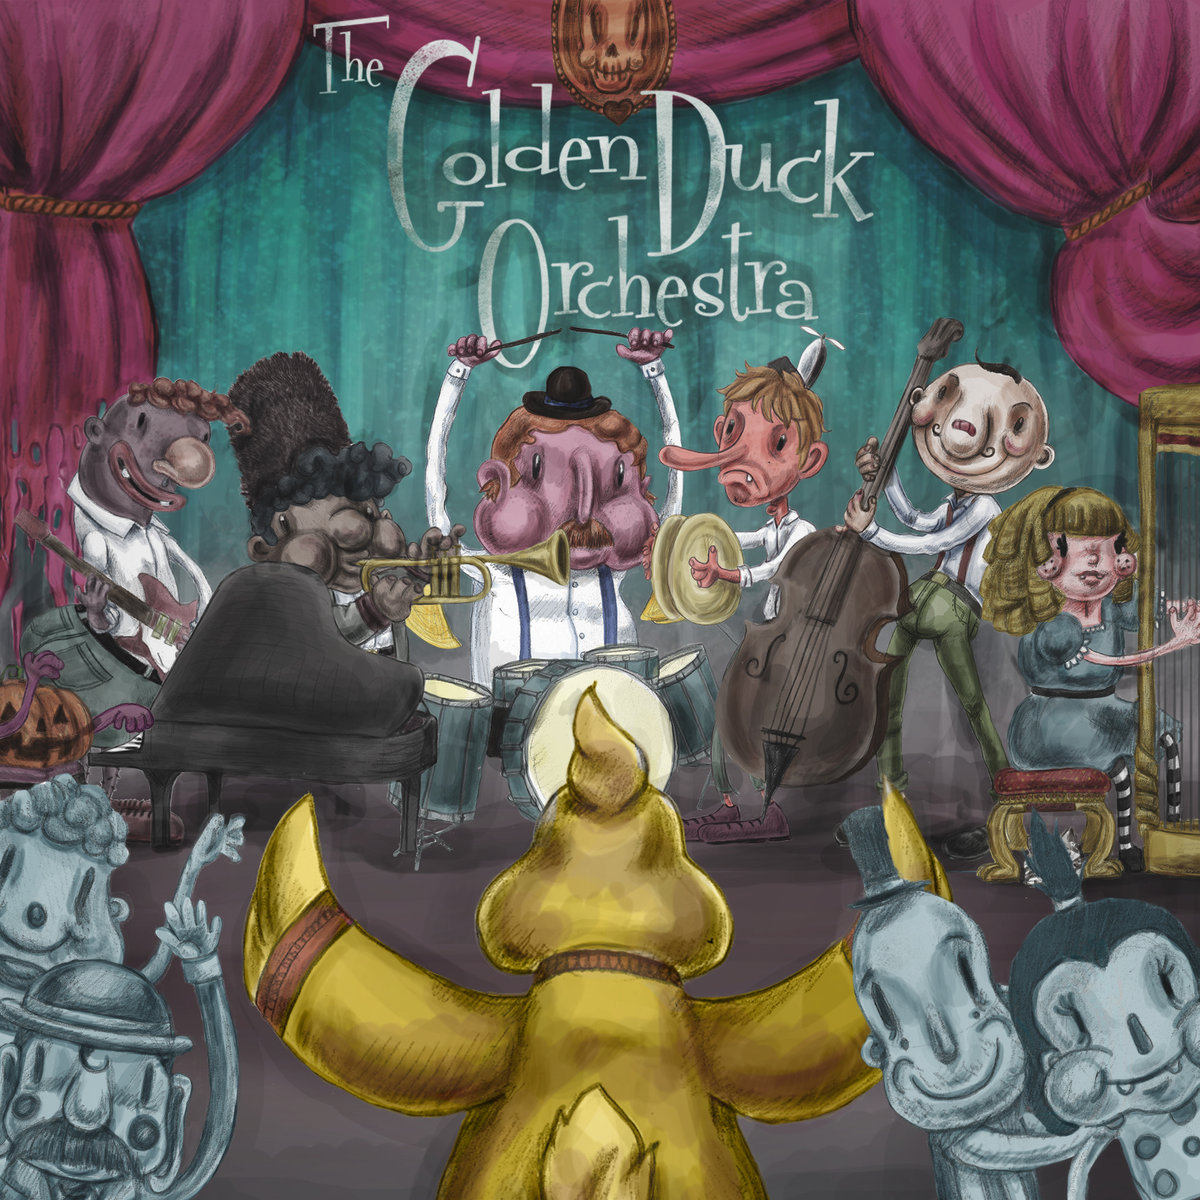 Golden Duck Orchestra - Mix It Up @ 'Golden Duck Orchestra' album (alternative, brazilian music)